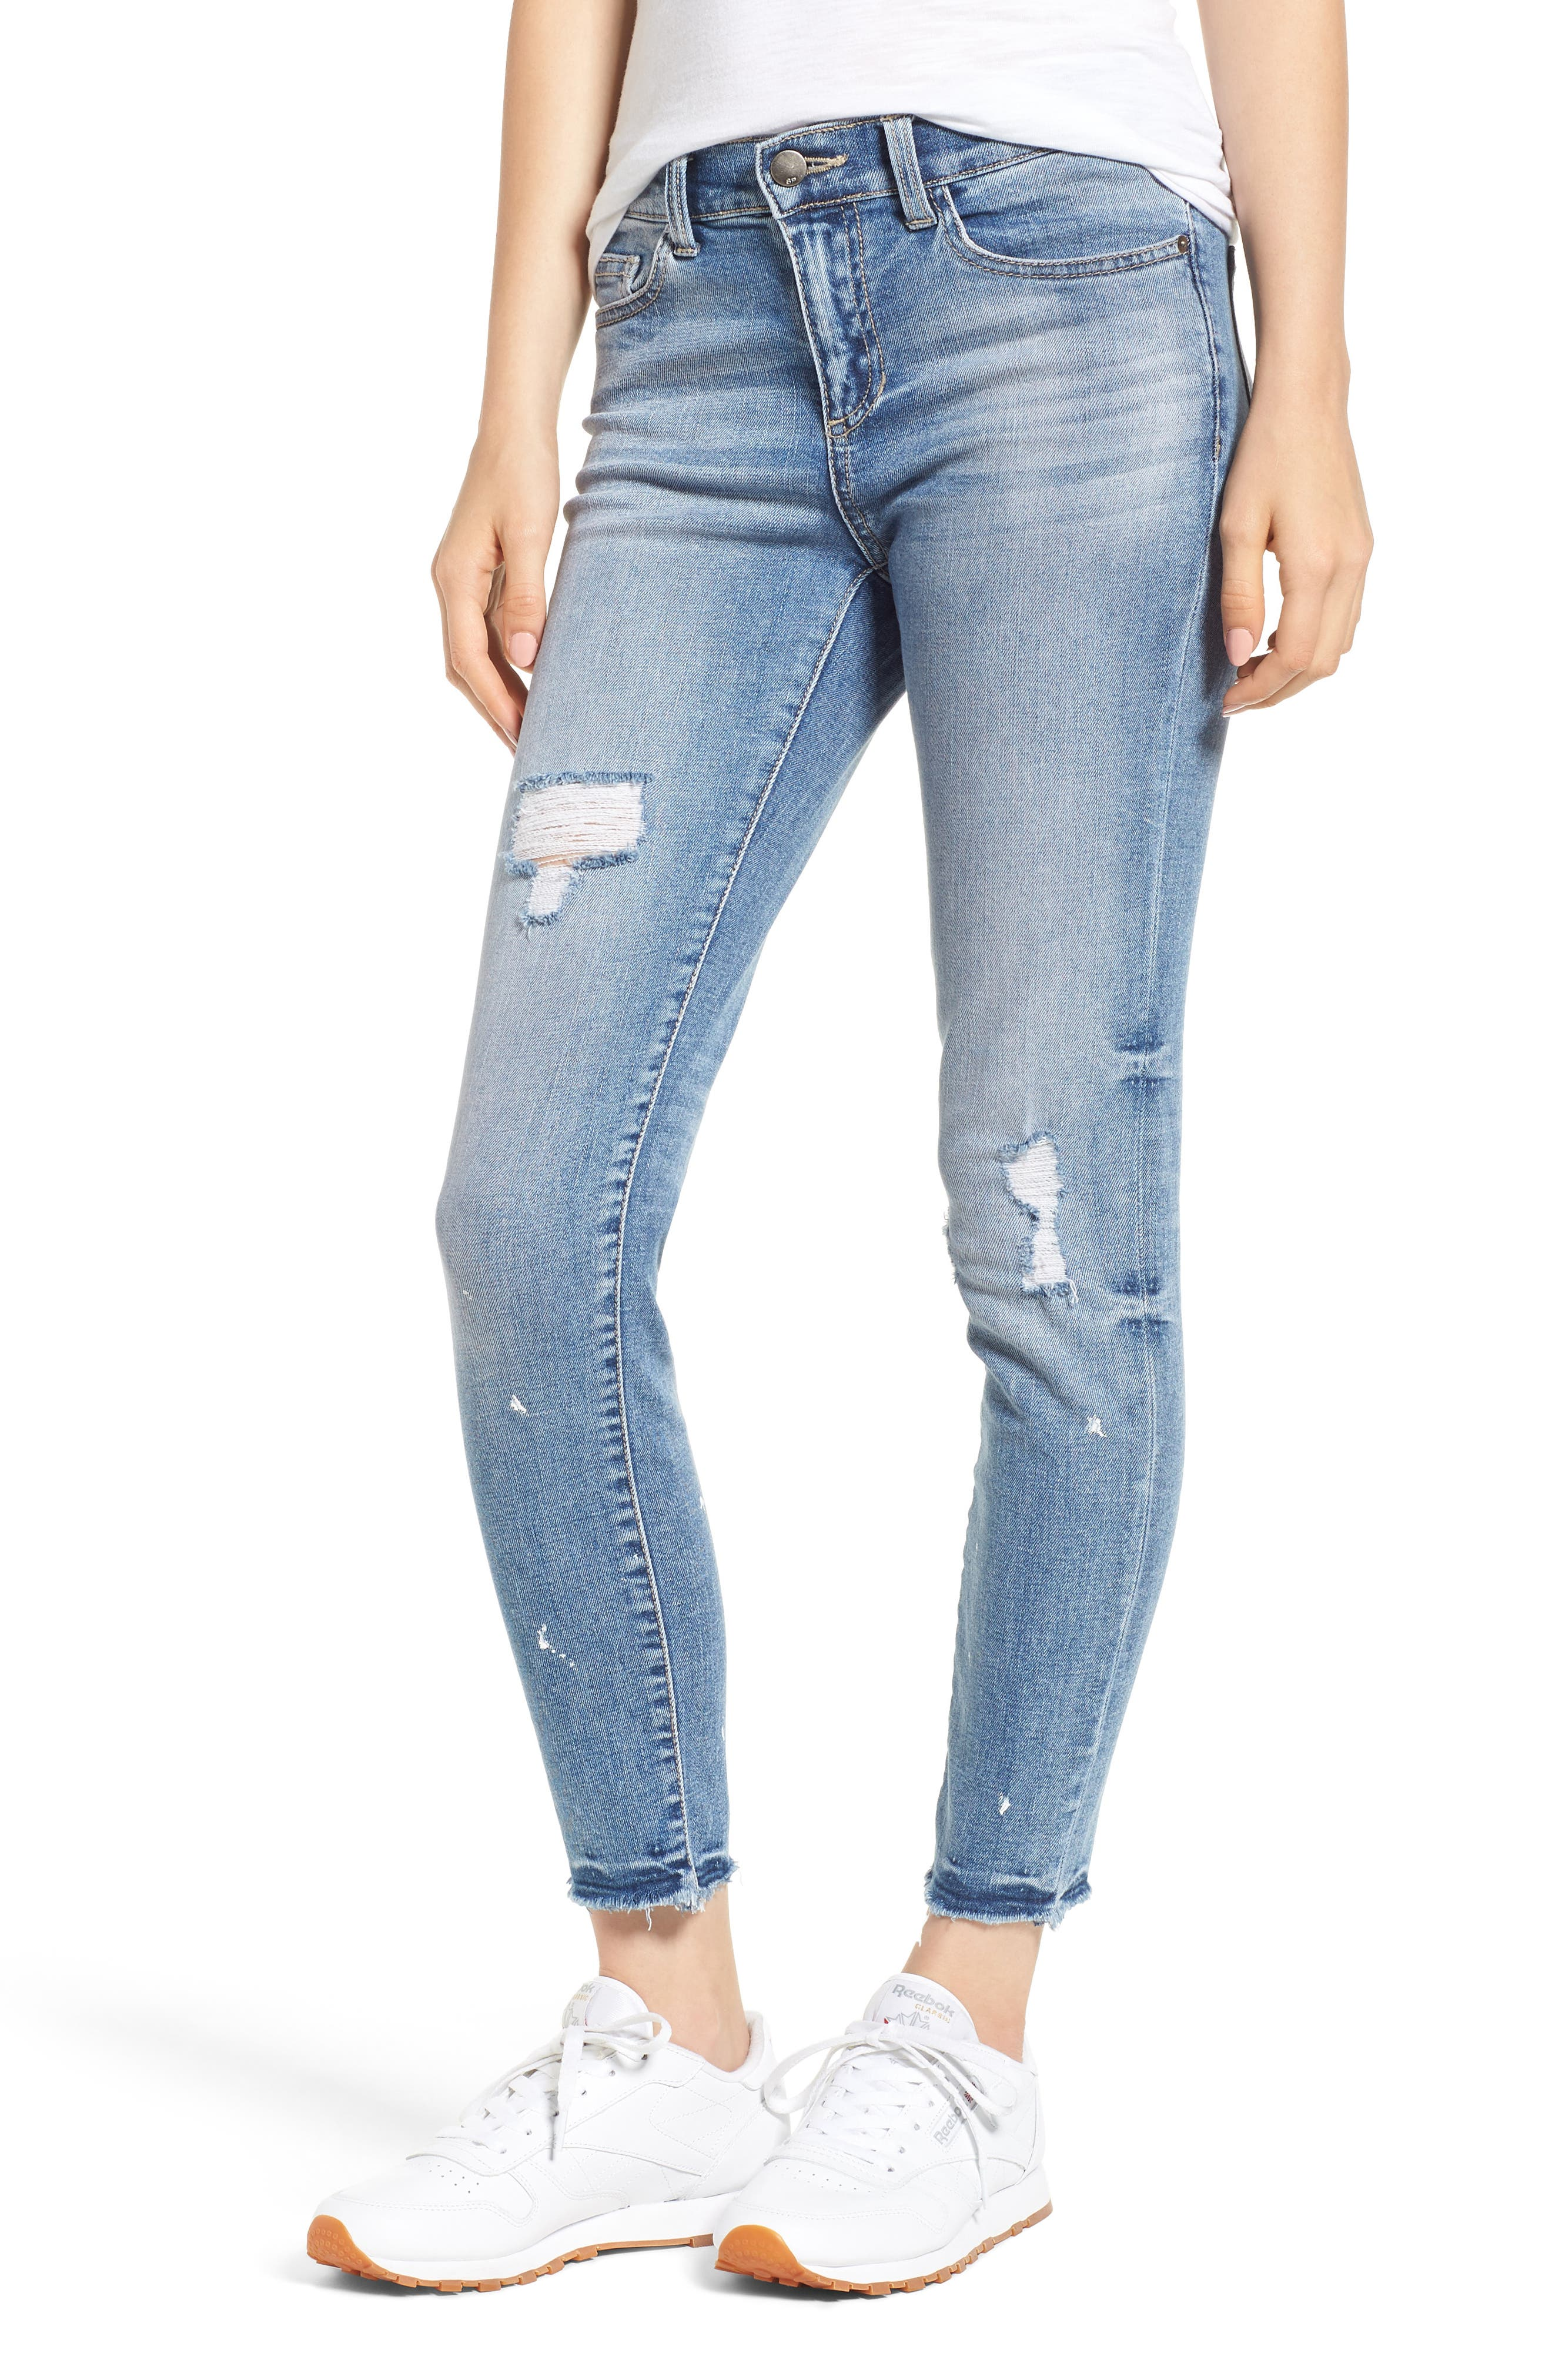 SP BLACK Ripped Skinny Jeans, Main, color, 460